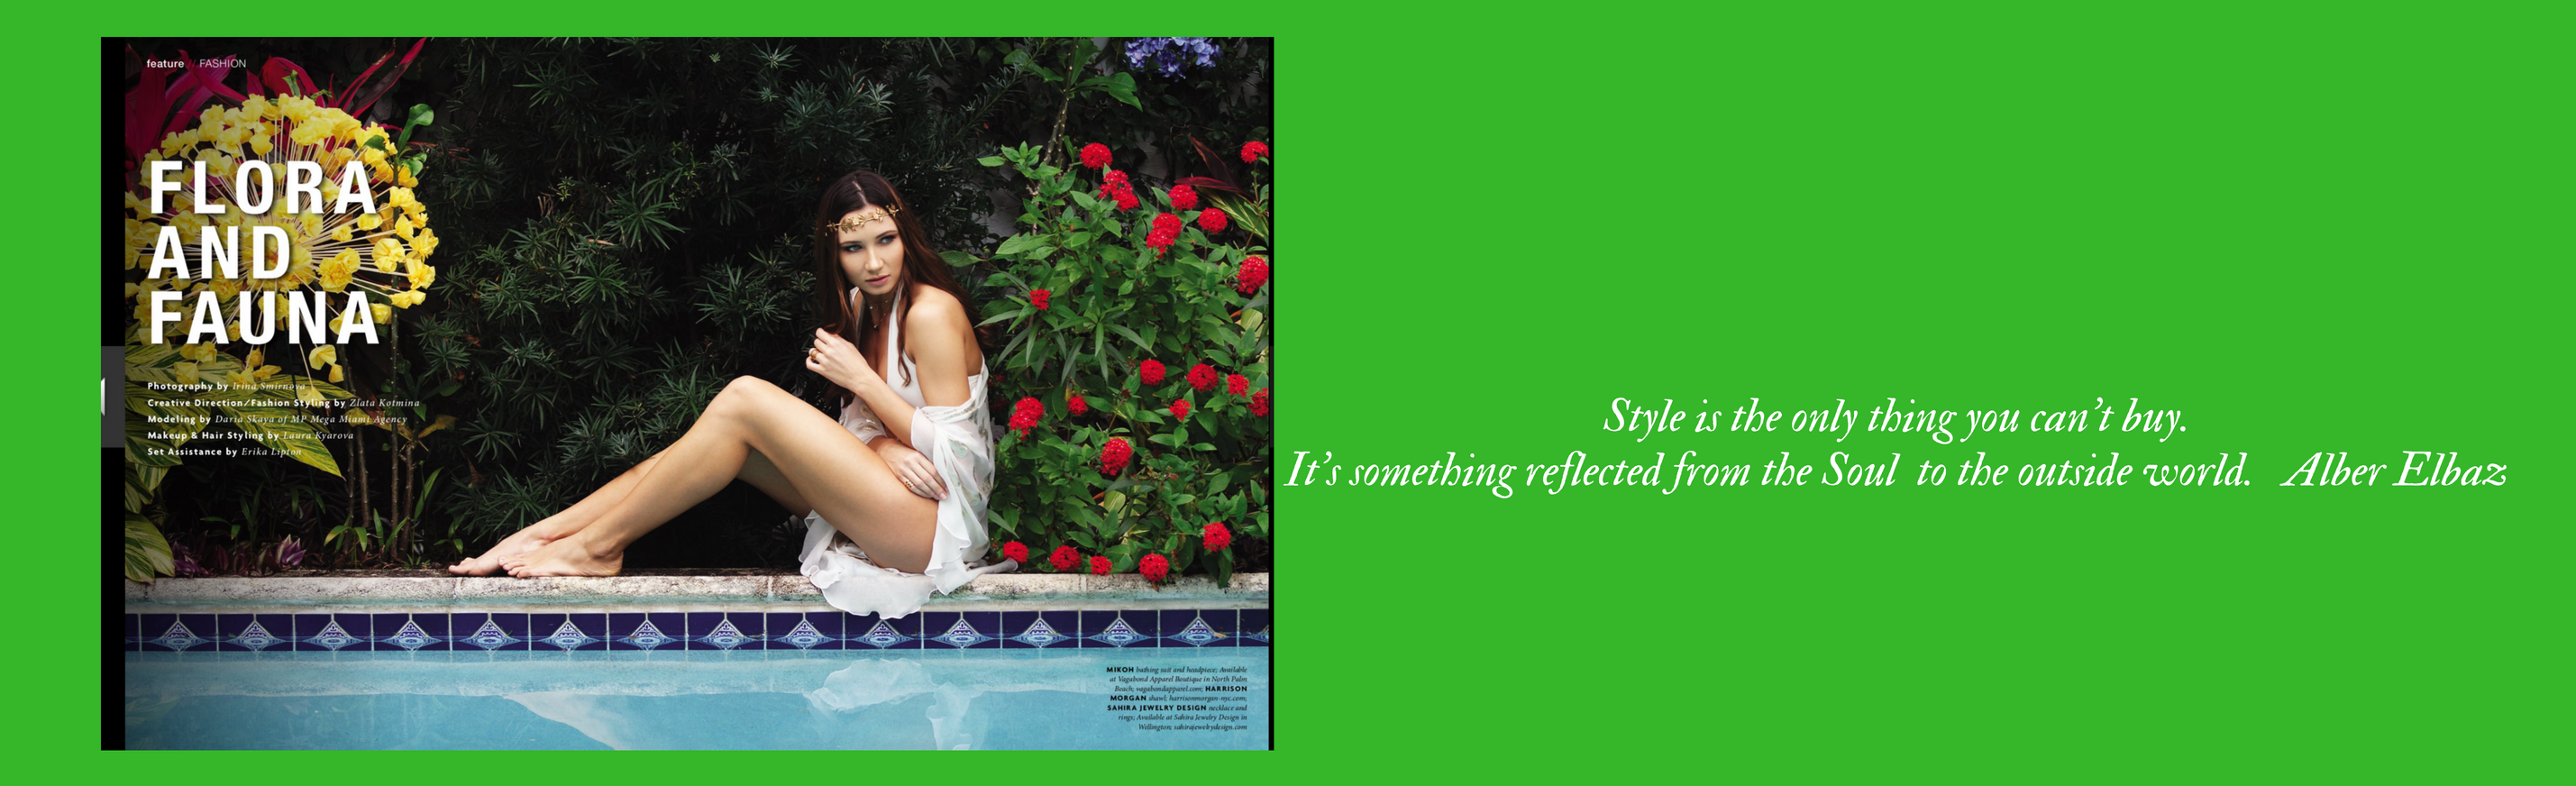 Daria, butterfly stole, poolside w Elbaz quote